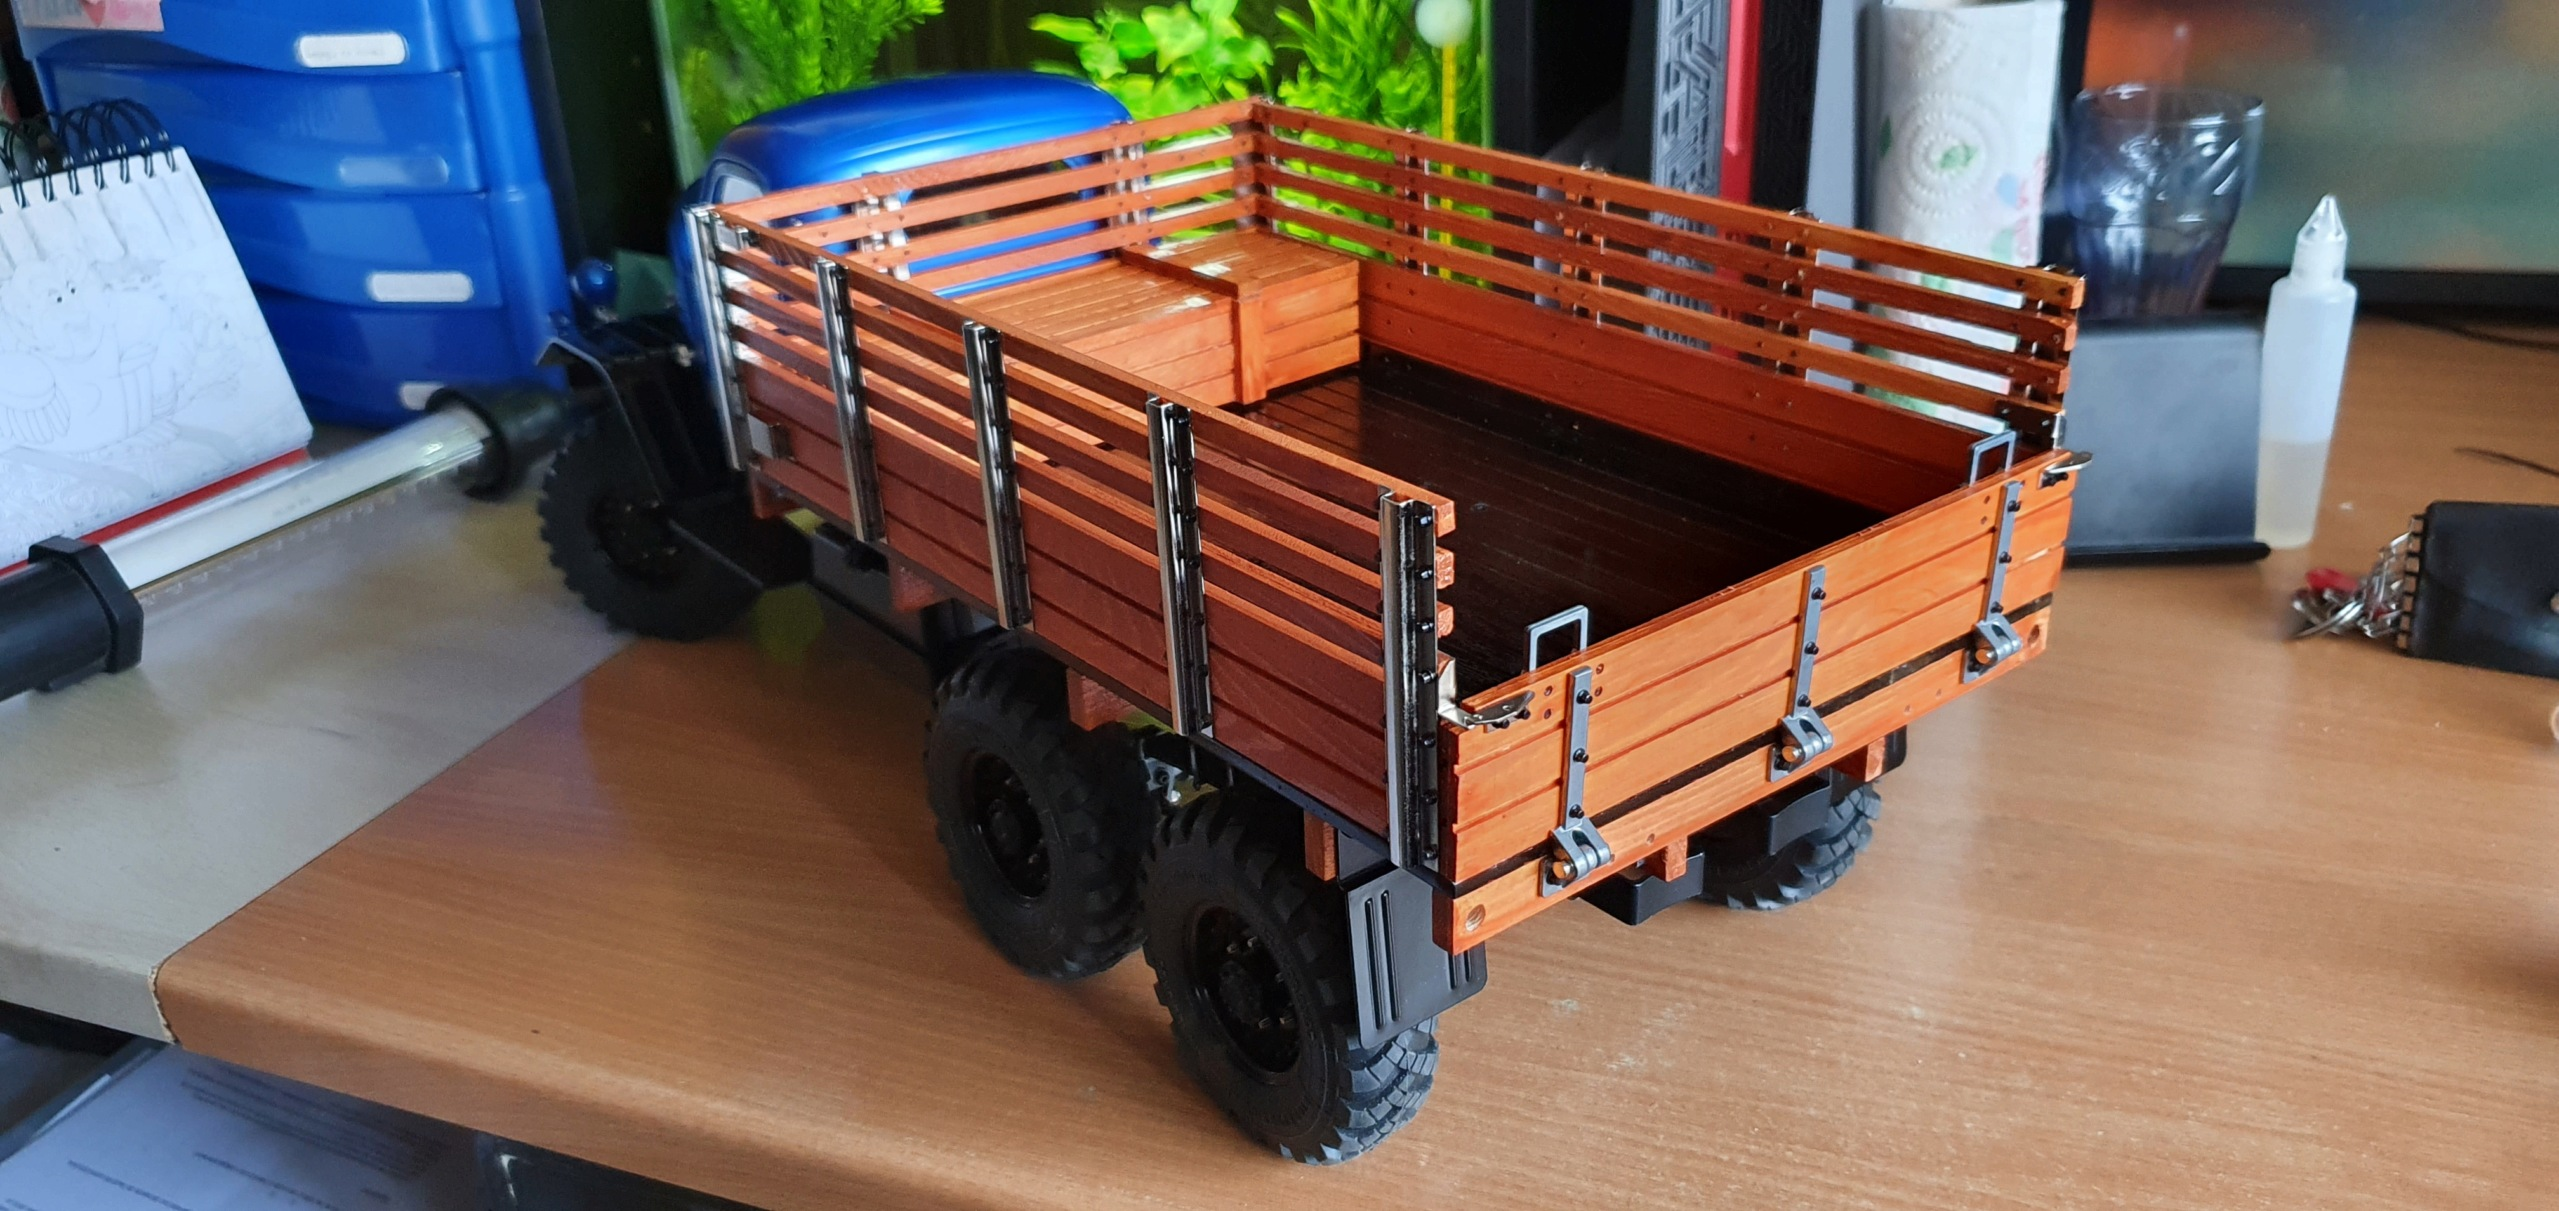 Camion King Kong 6x6 1/12 CA30 Tractor by Fab85 - Page 2 20210521